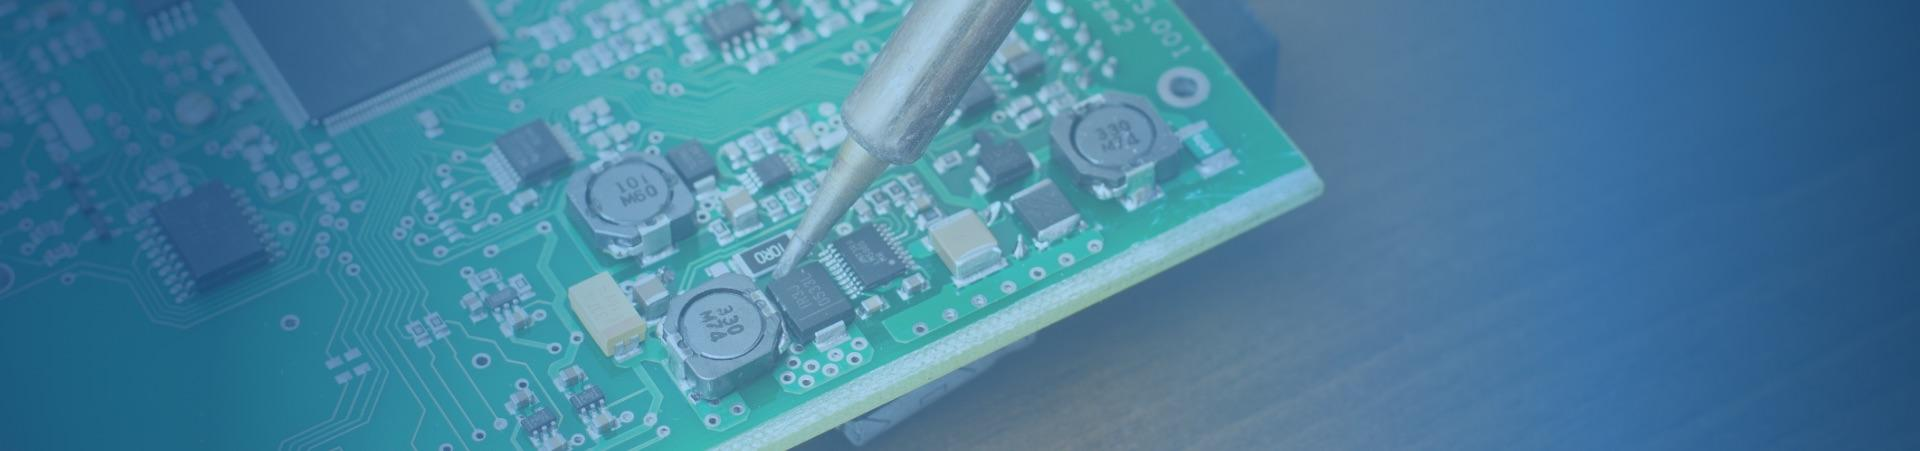 Turn-key circuit Board Assembly services.jpg